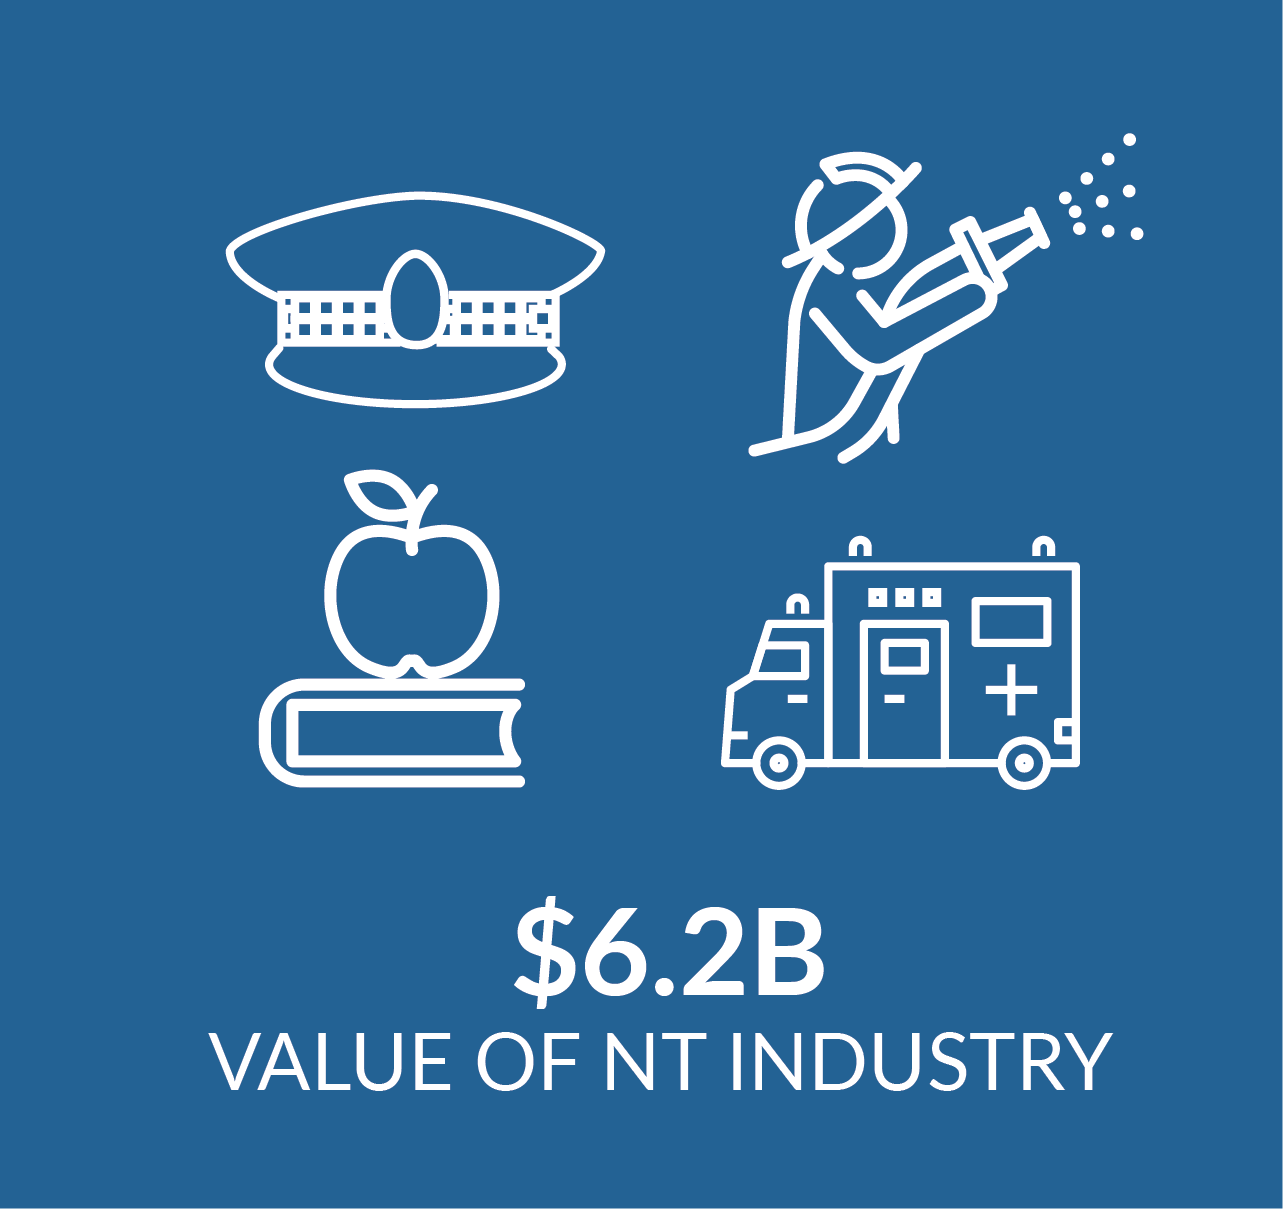 Infographic showing value of NT industry